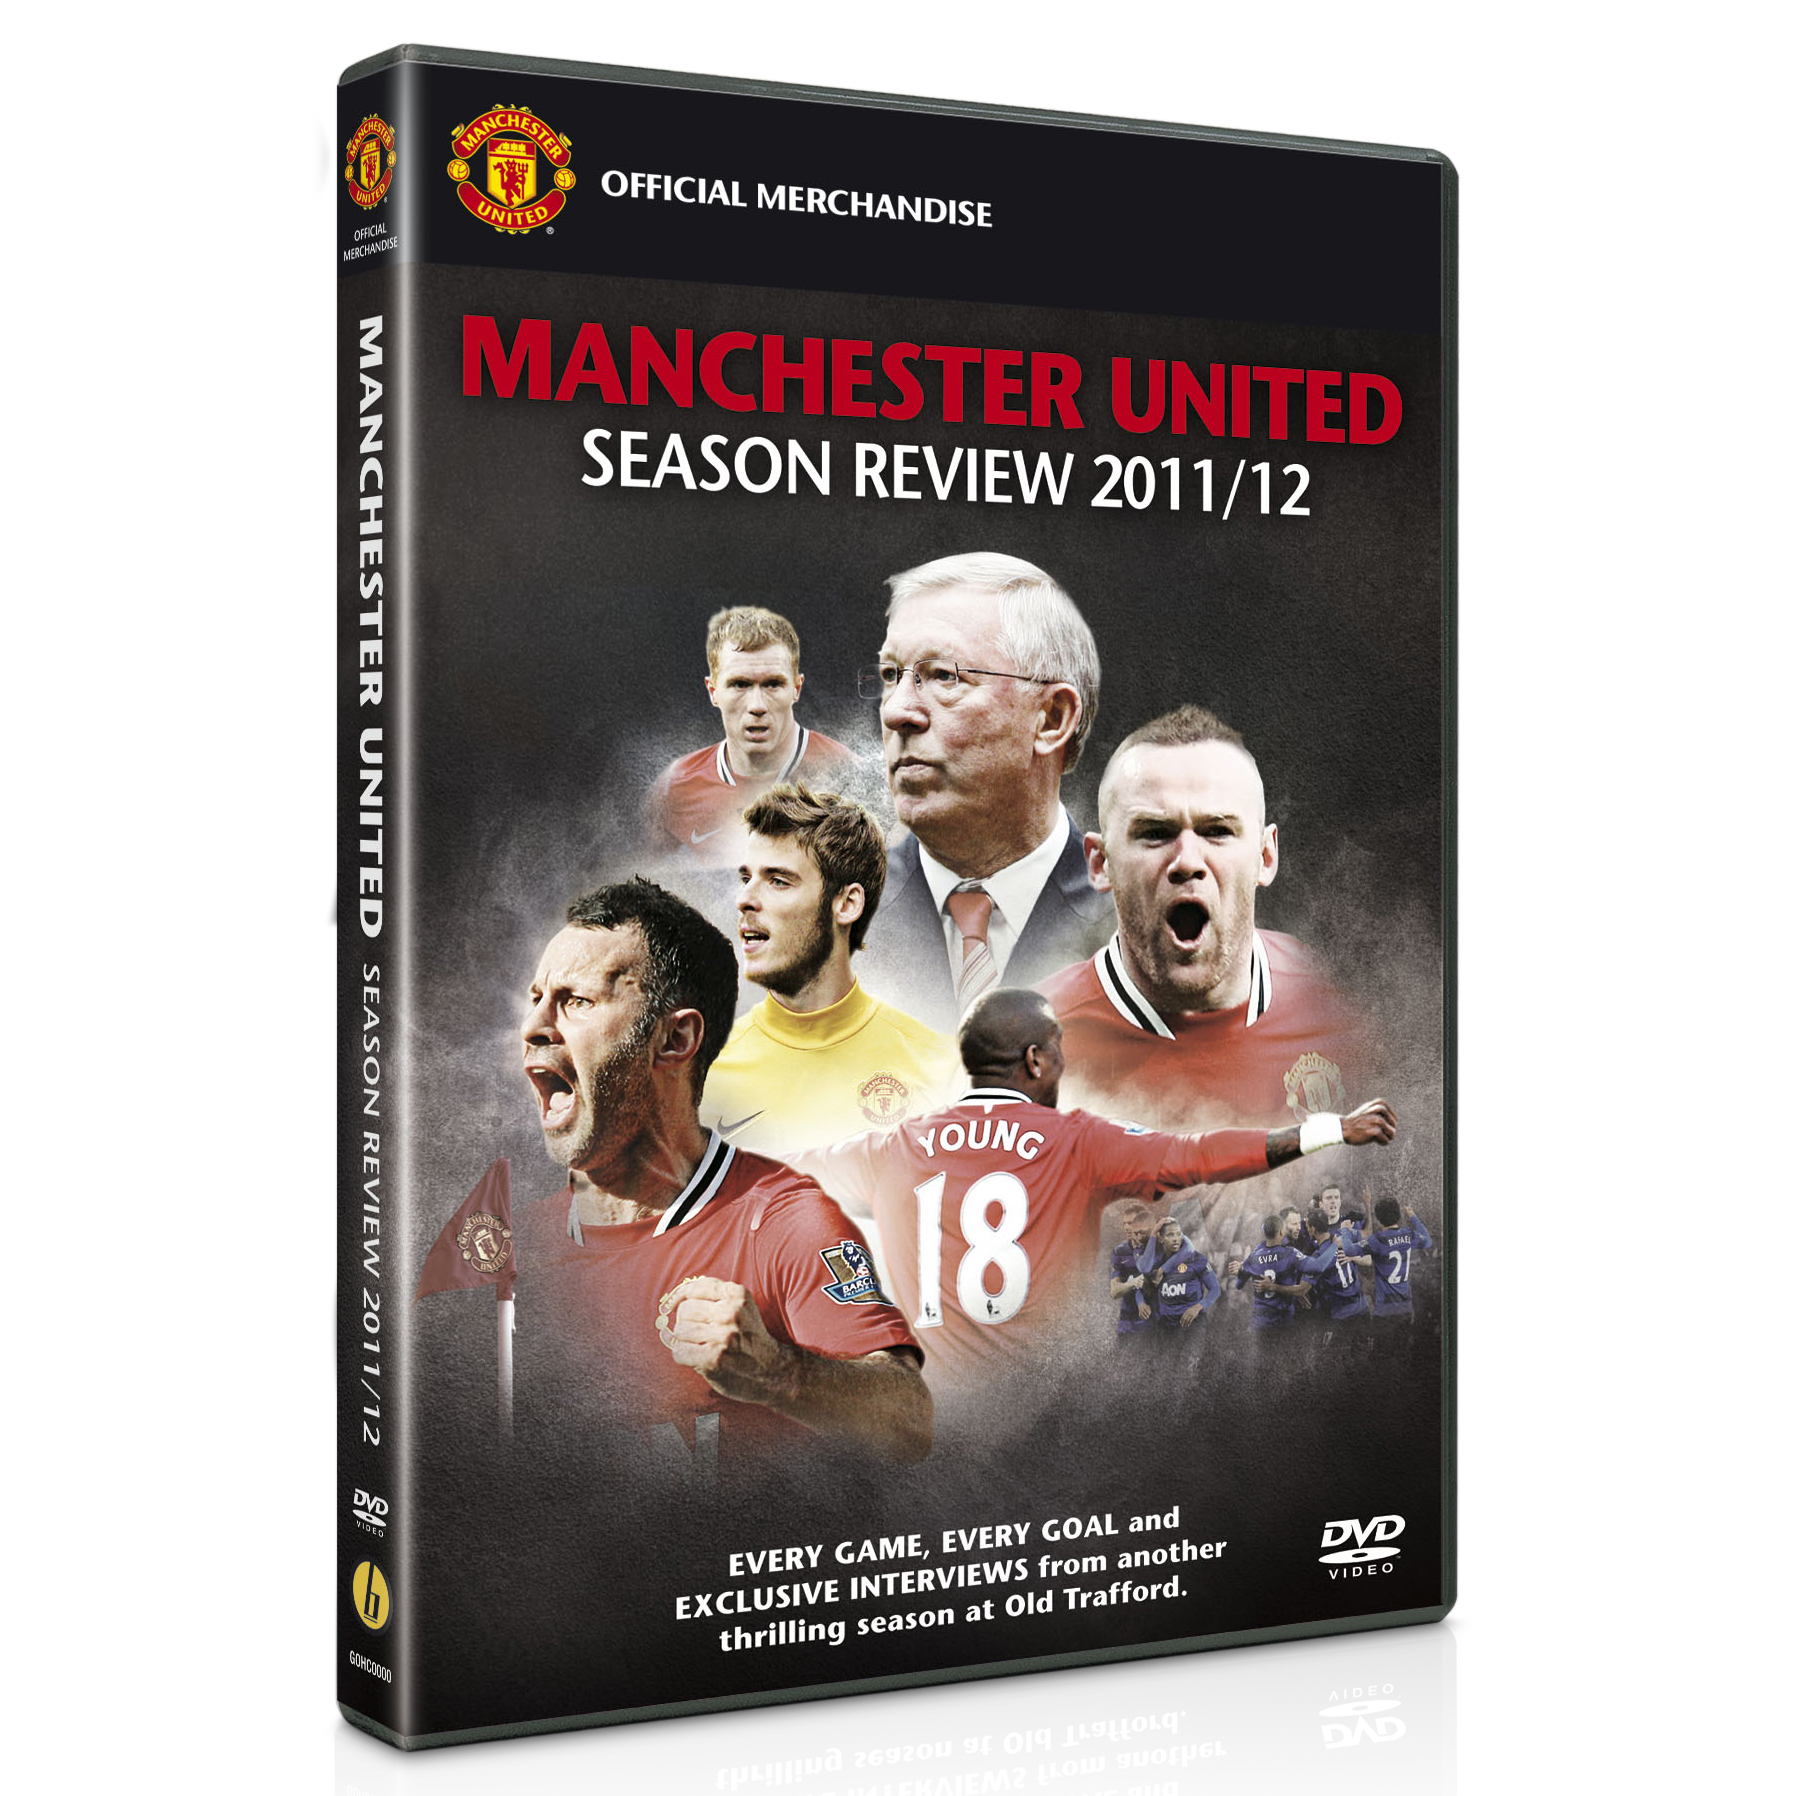 Manchester United 2011/12 Season Review DVD